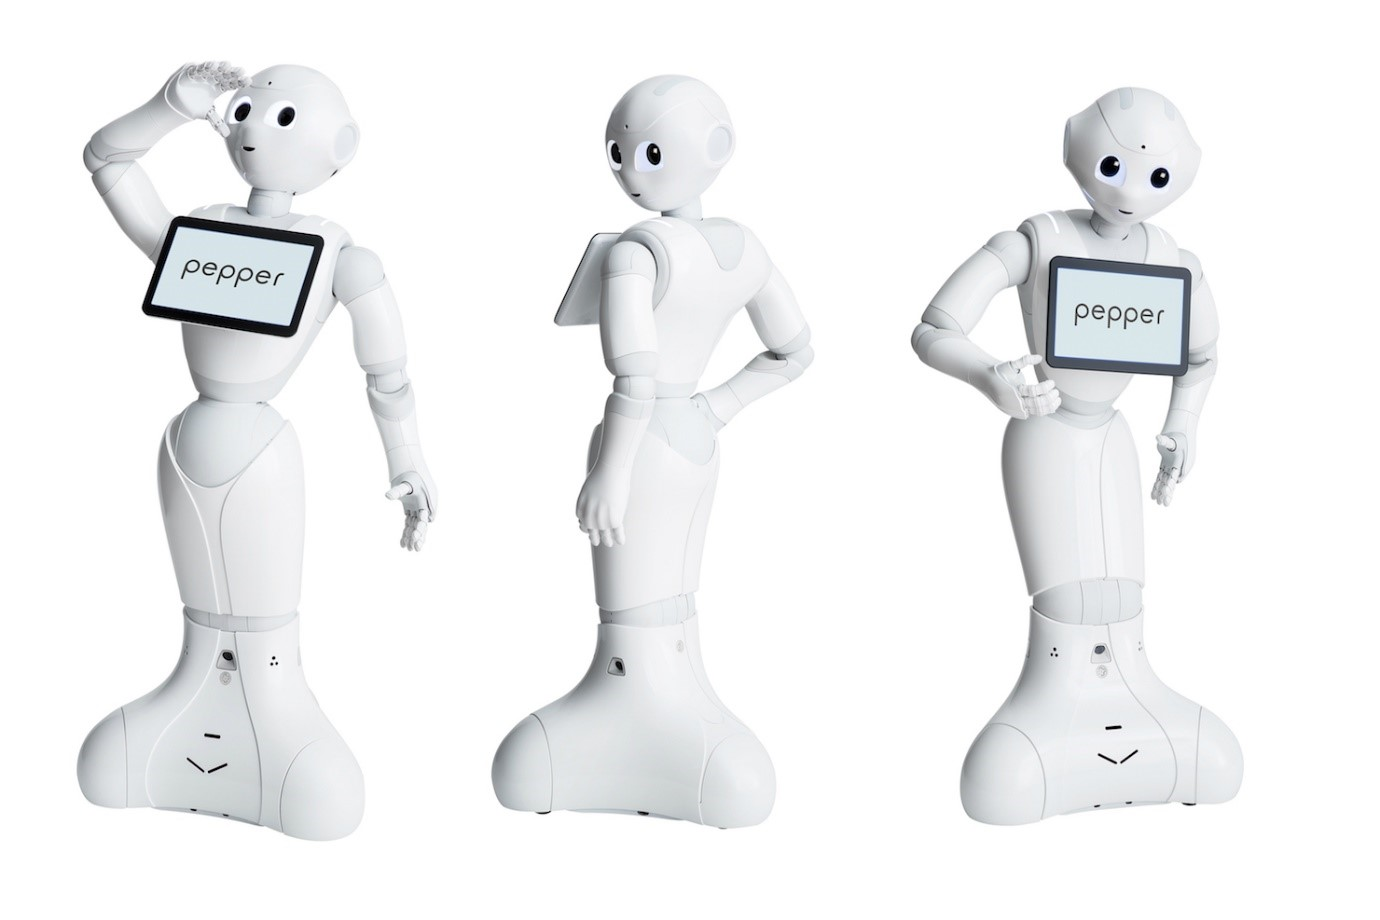 NAO and Pepper Personal Assistants